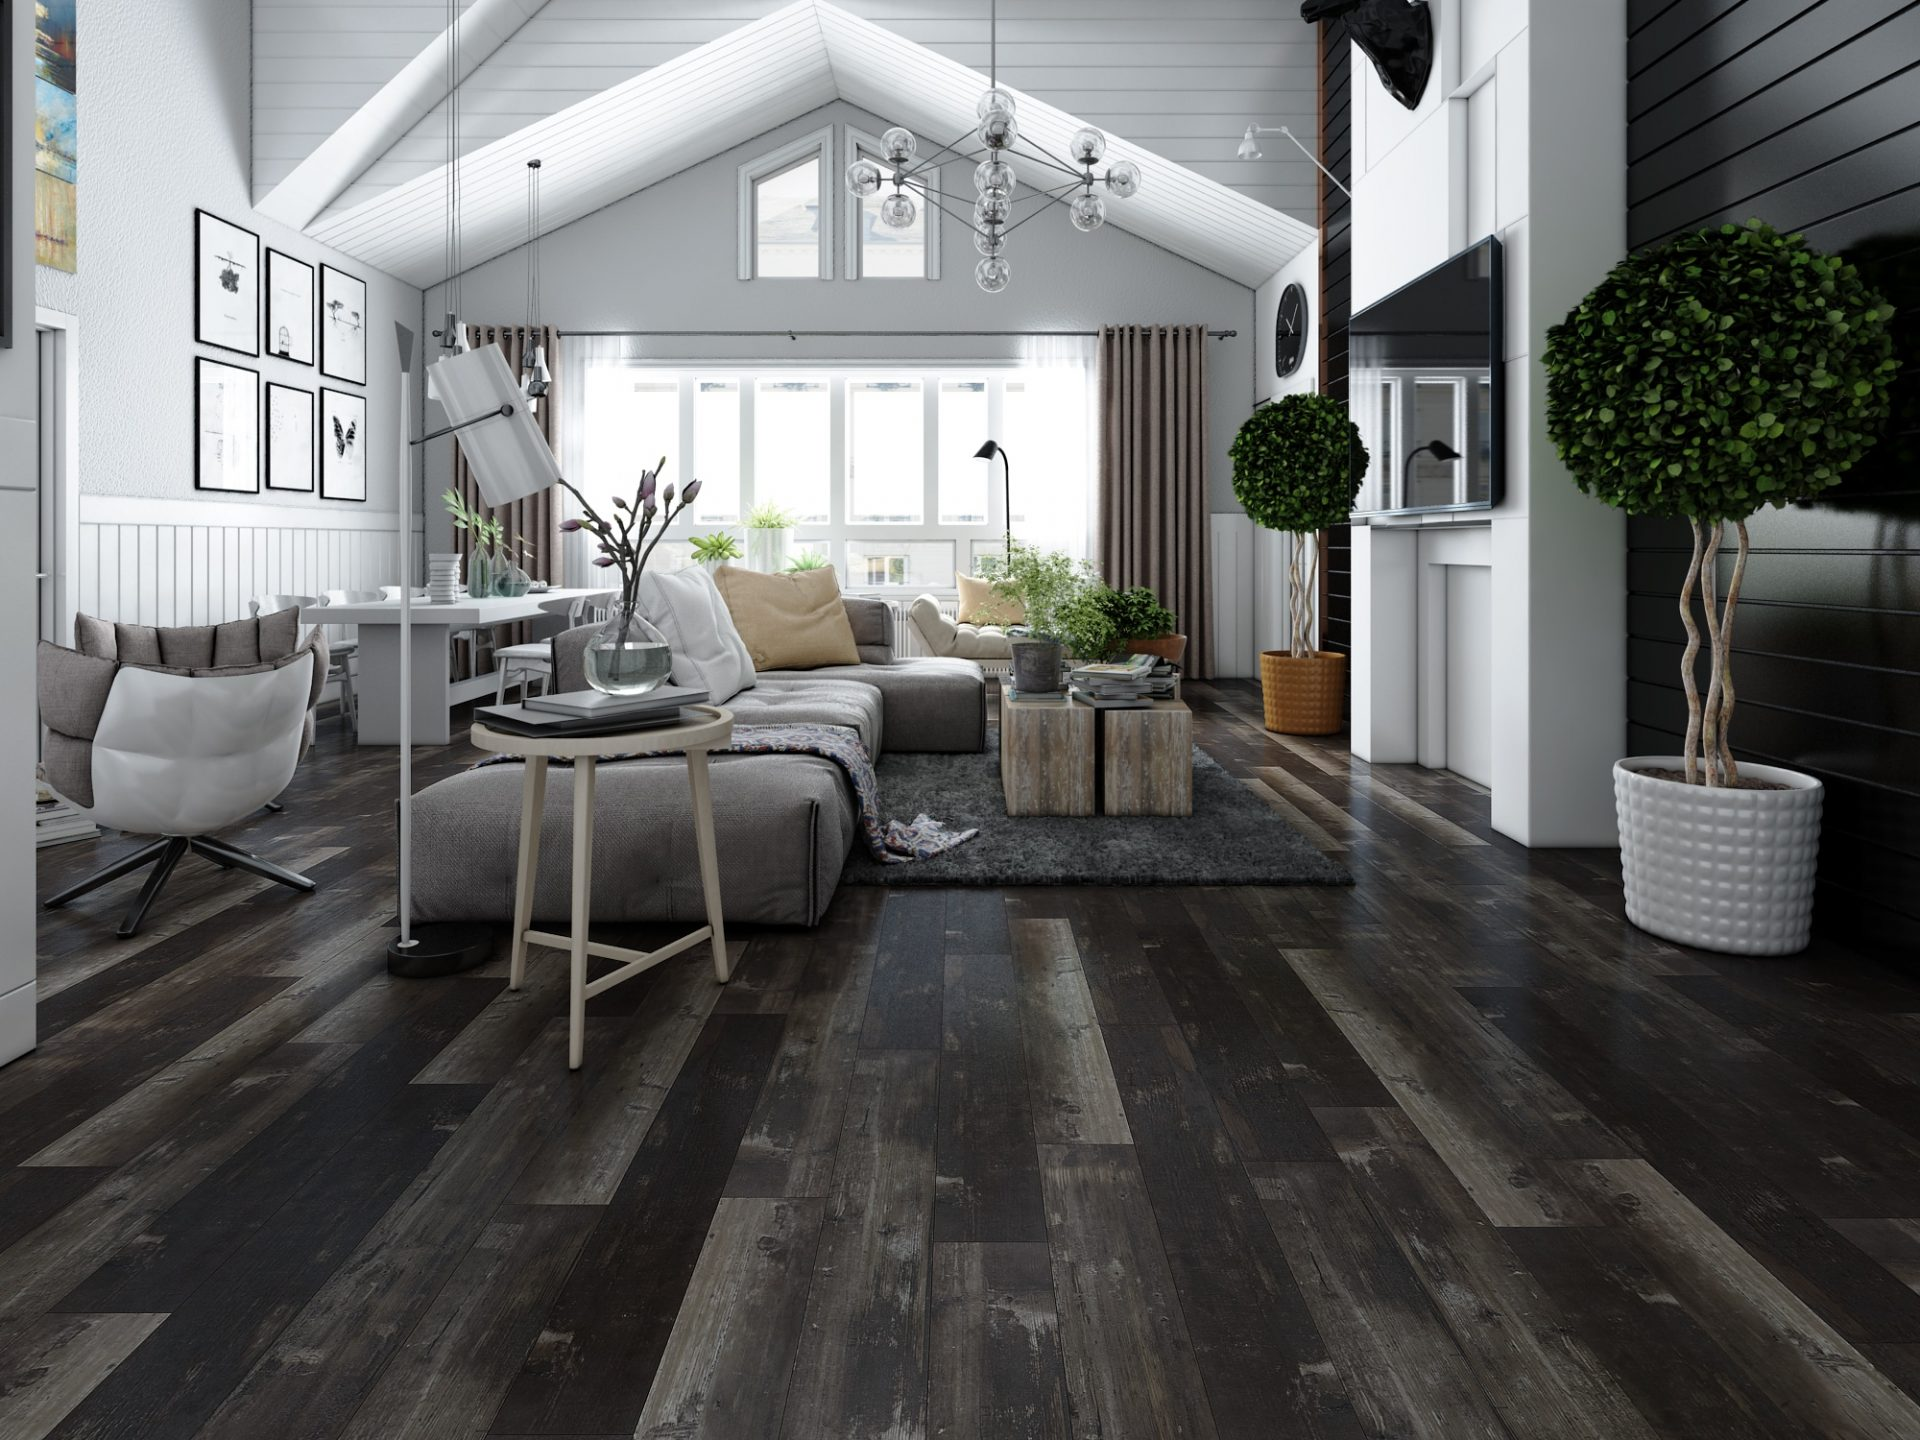 Parkay Xpr Bronze Weathered Integrity Laminate Flooring